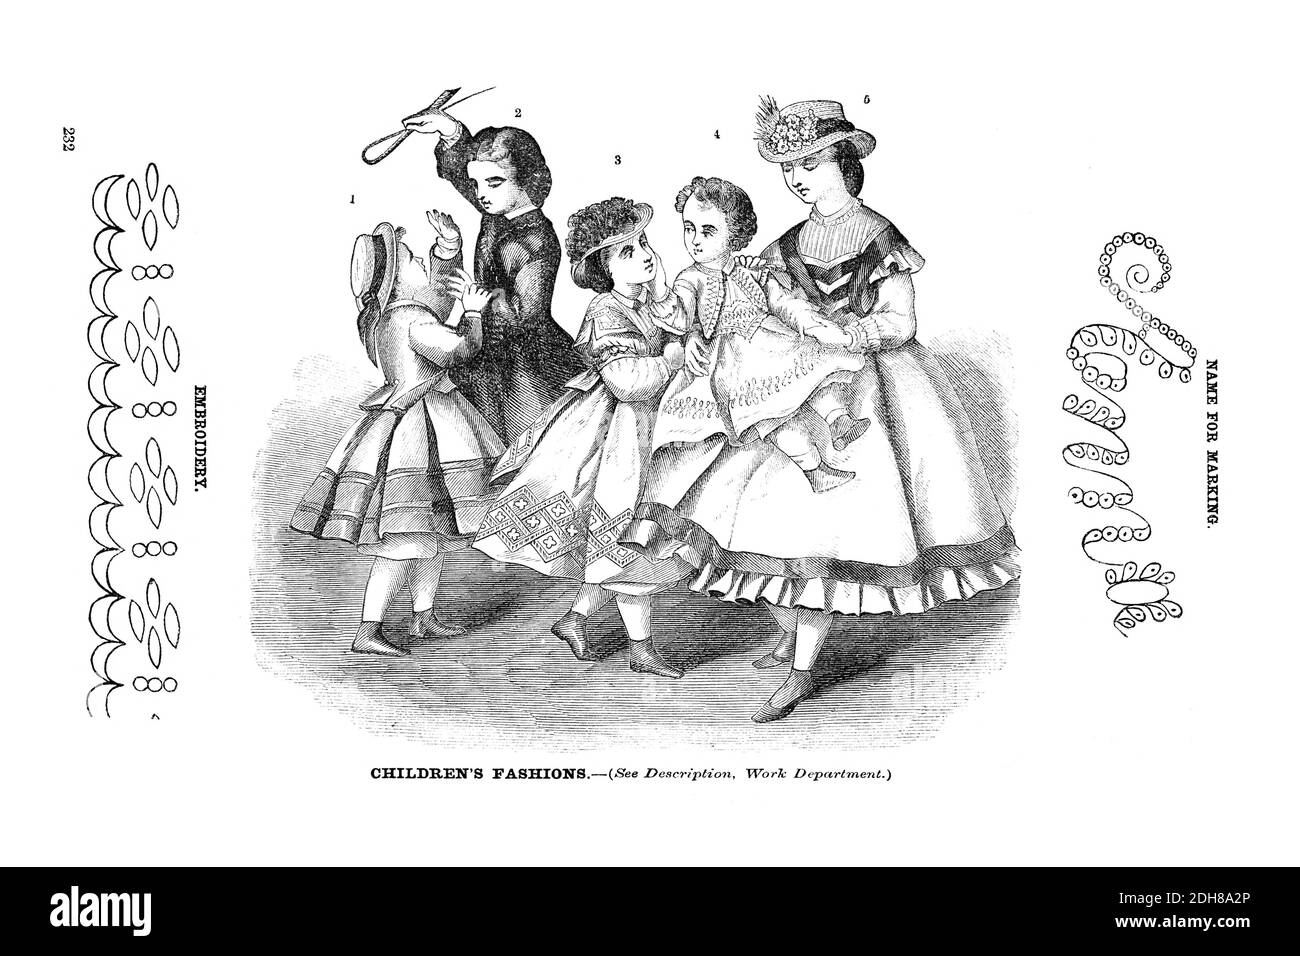 Godey's children's Fashion for March 1864 from Godey's Lady's Book and Magazine, March 1864, Philadelphia, Louis A. Godey, Sarah Josepha Hale, Stock Photo